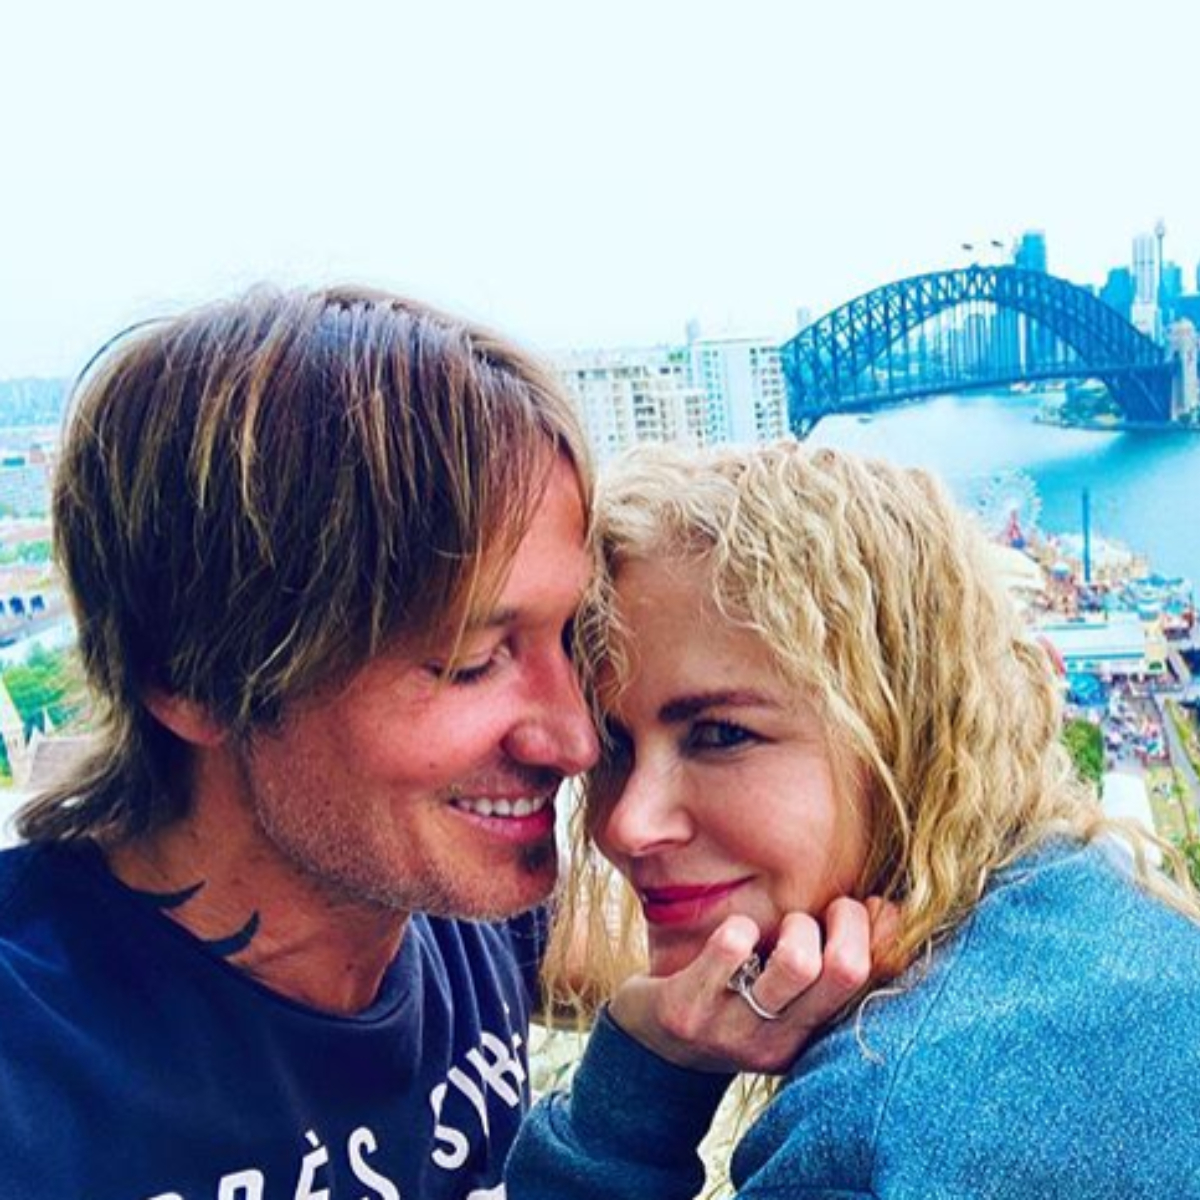 Nicole Kidman and Keith Urban wish their fans in an adorable New Year's video; WATCH